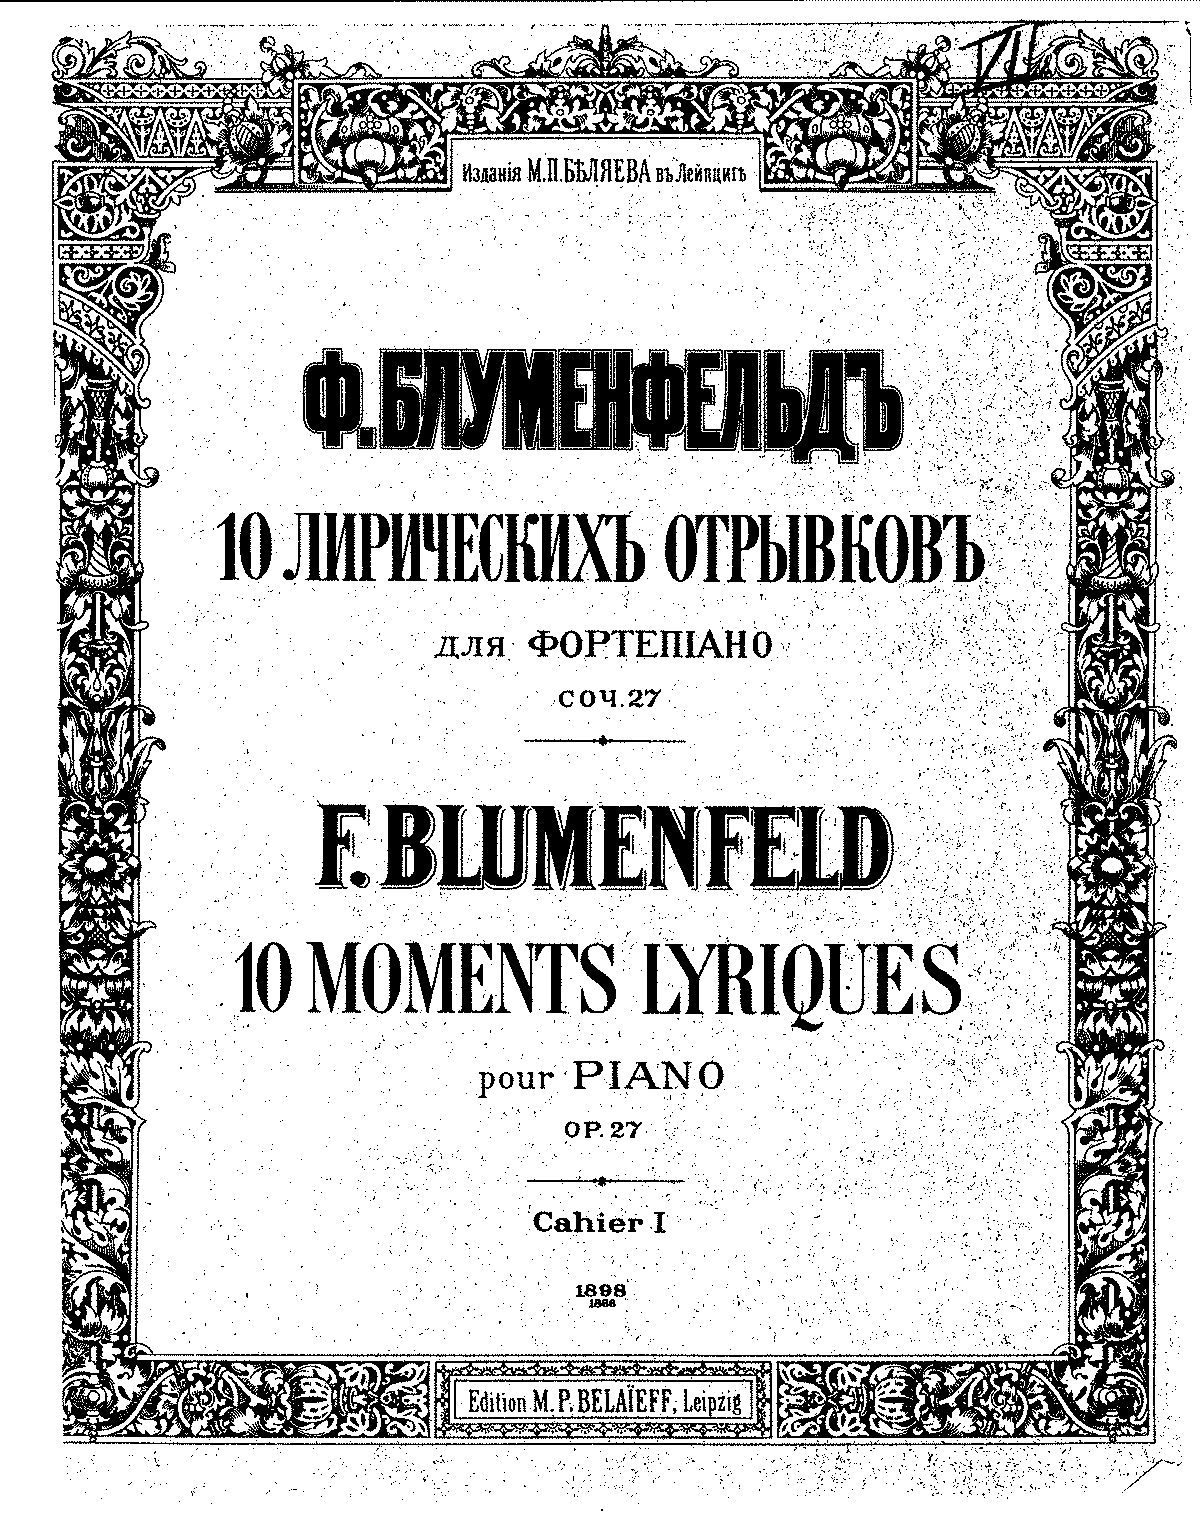 Blumenfeld - Op.27 - 10 Moments Lyriques.pdf